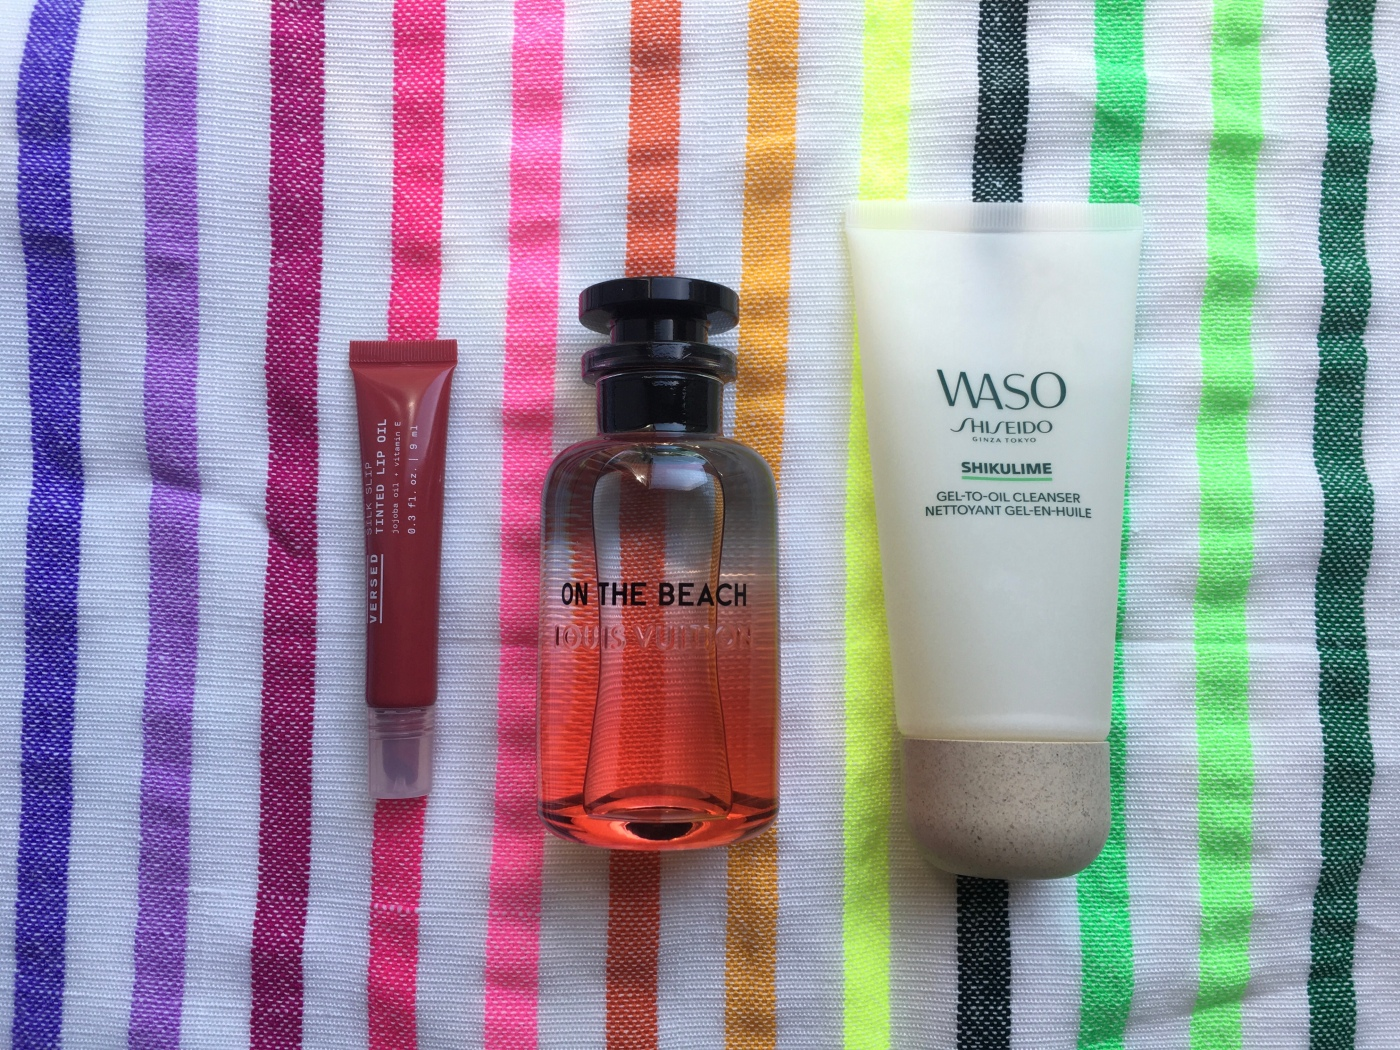 was shikulime gel to oil cleanser shiseido On the Beach Louis Vuitton Versed Tinted Lip Oil